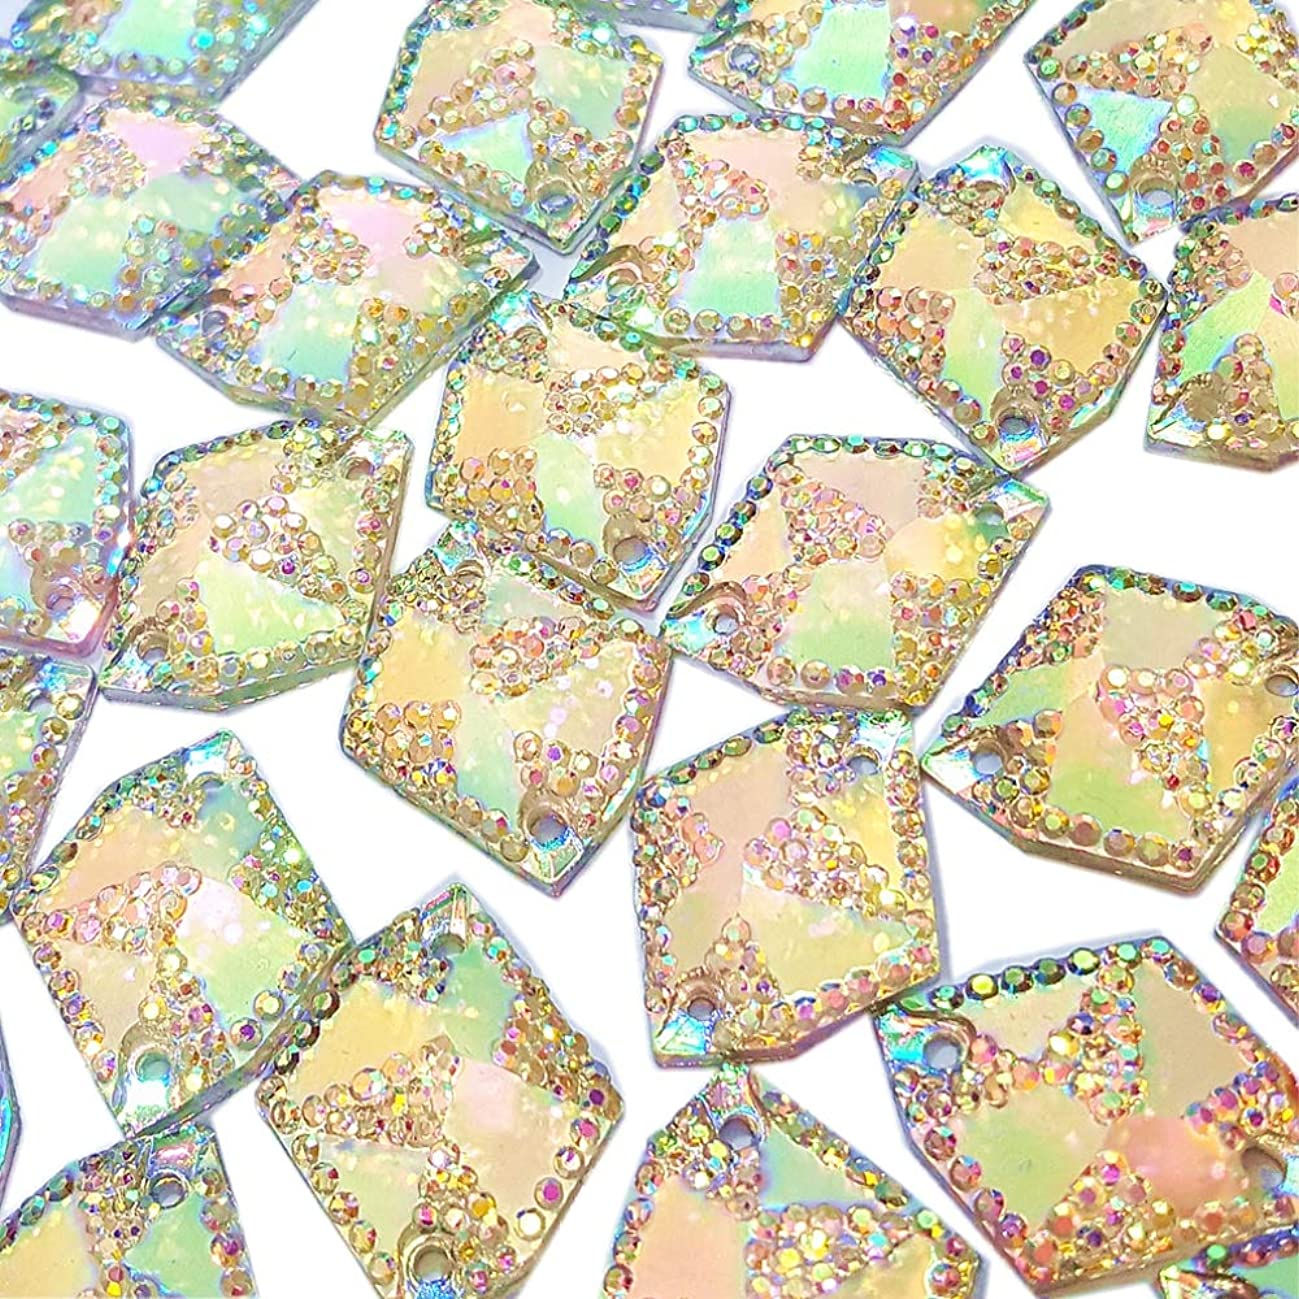 60pcs Cosmic Shape Sew On Rhinestones for Clothes Garment Shoes Accessories,Flatback All- Star Gems Sewing Resin Stone Beads 2 Holes (AB, 17x21mm)